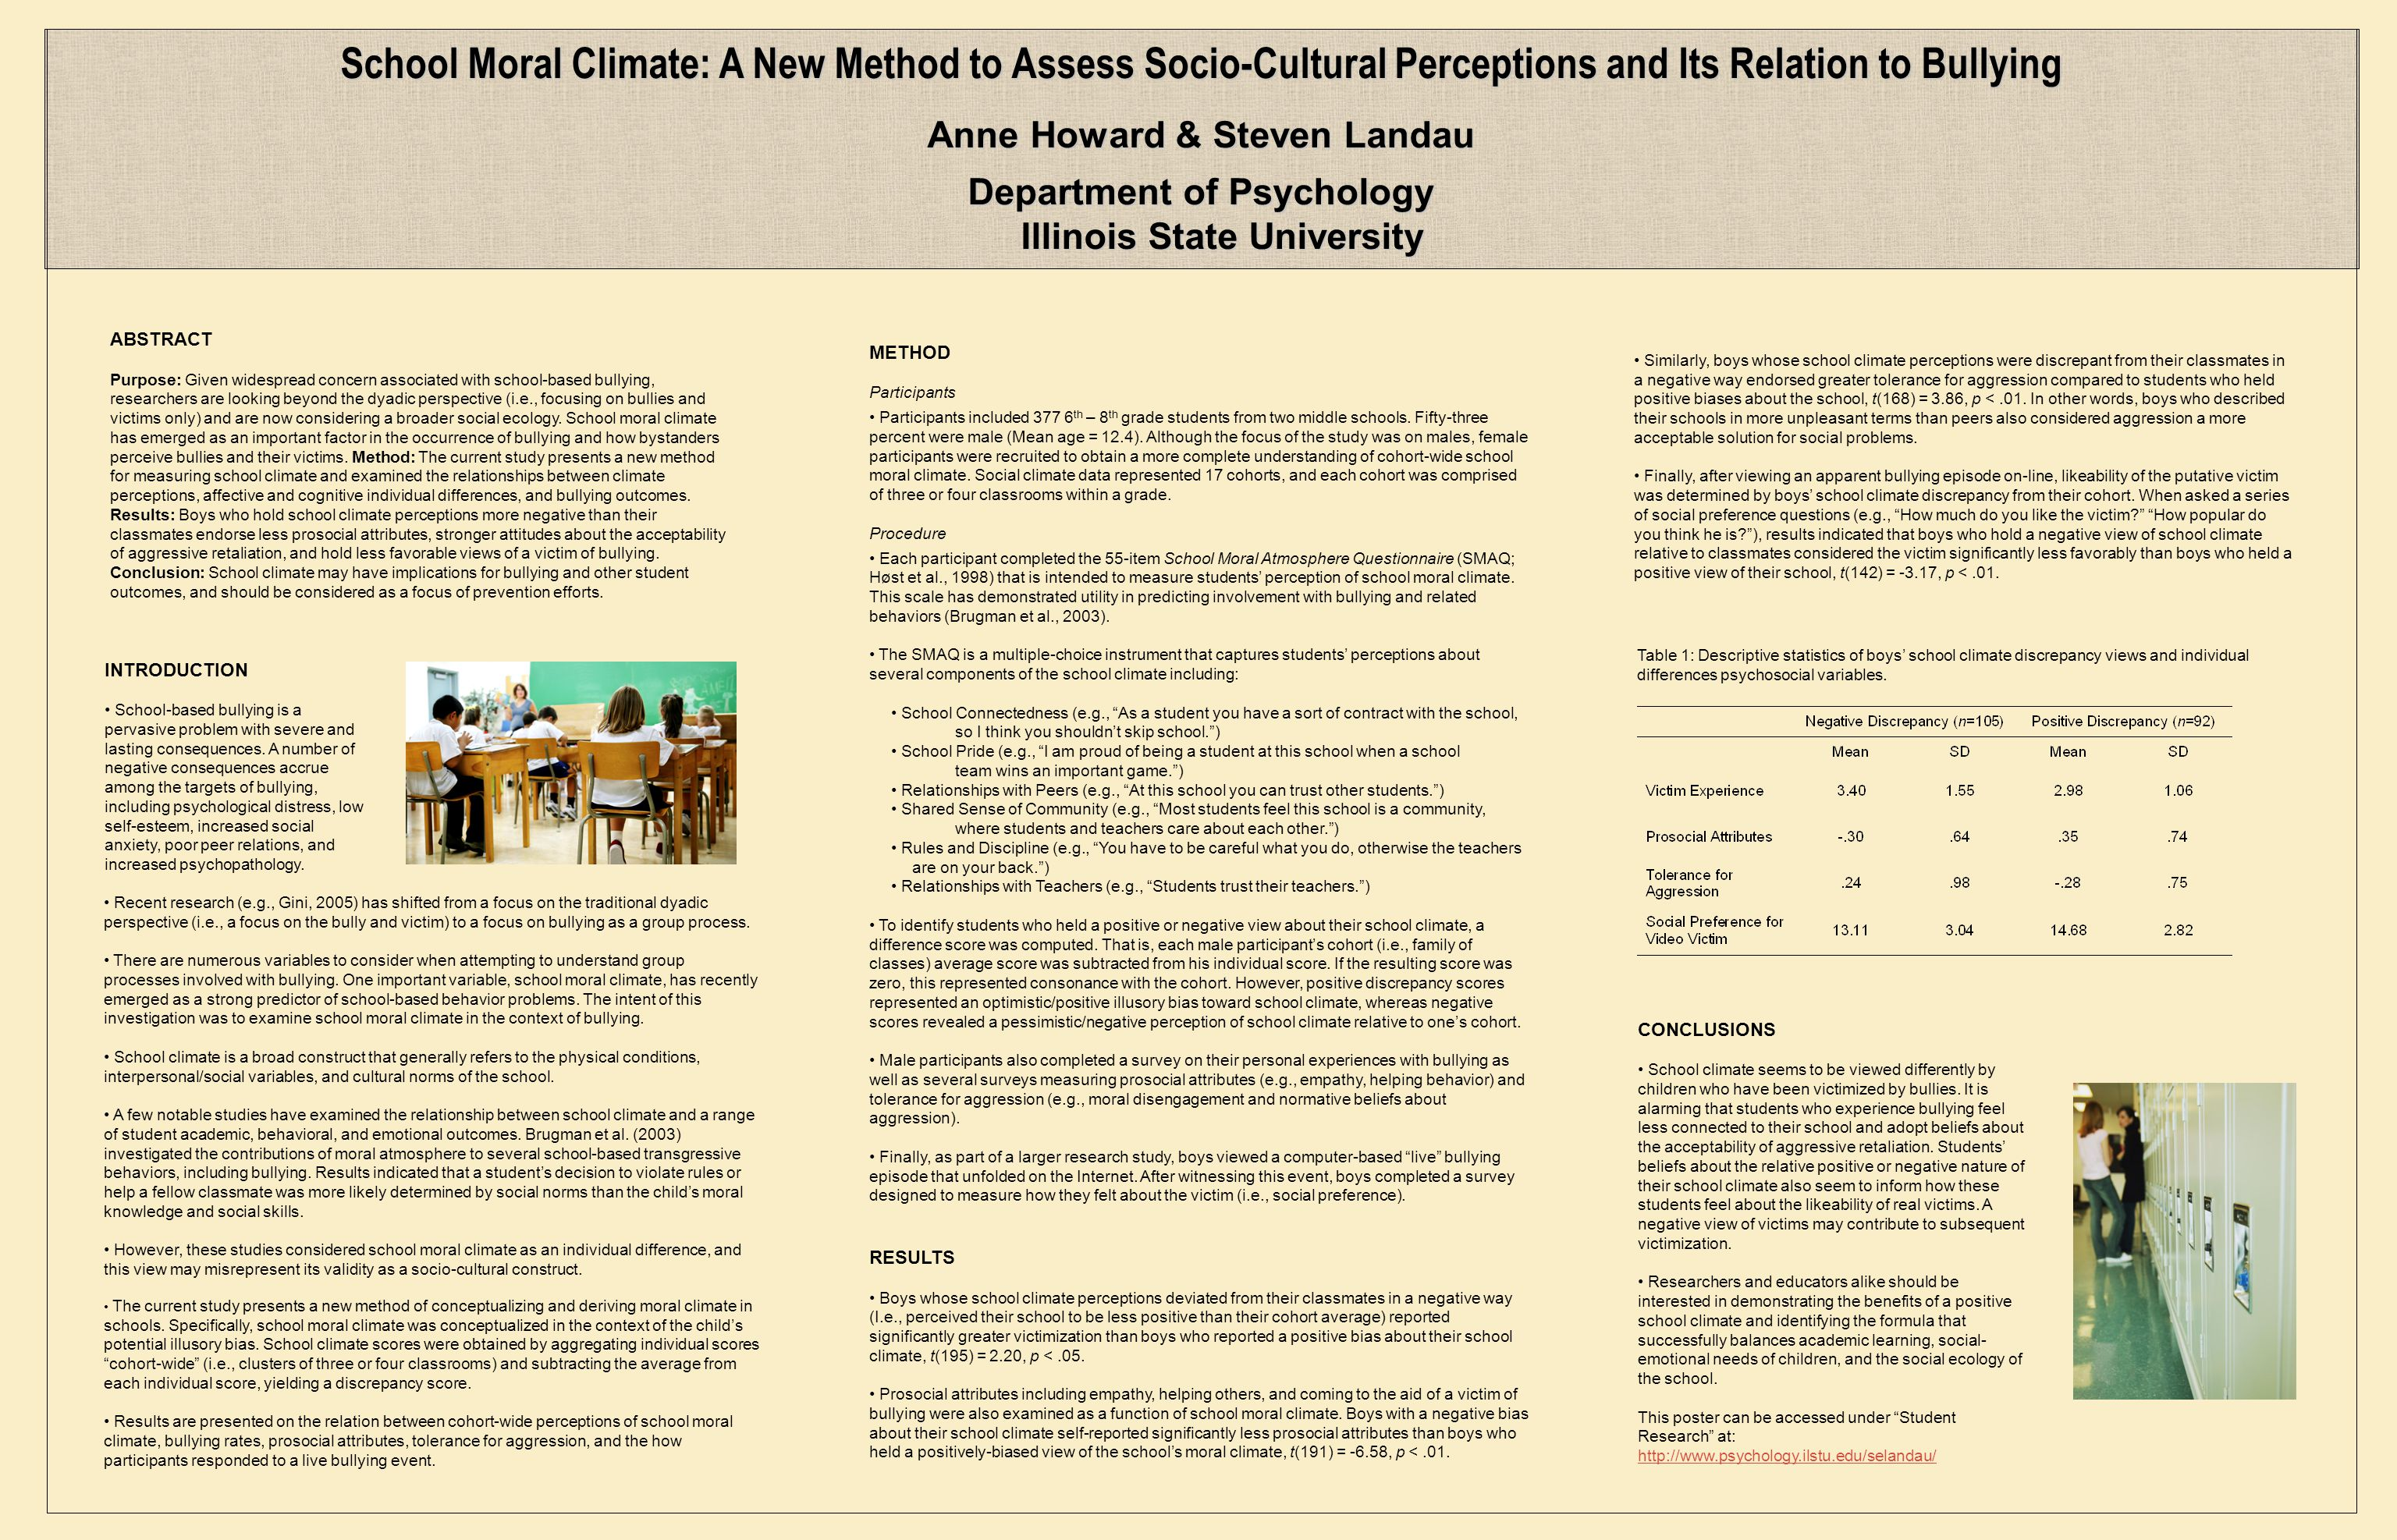 r P School Moral Climate: A New Method to Assess Socio-Cultural Perceptions and Its Relation to Bullying Anne Howard & Steven Landau Department of Psychology Illinois State University Recent research (e.g., Gini, 2005) has shifted from a focus on the traditional dyadic perspective (i.e., a focus on the bully and victim) to a focus on bullying as a group process.